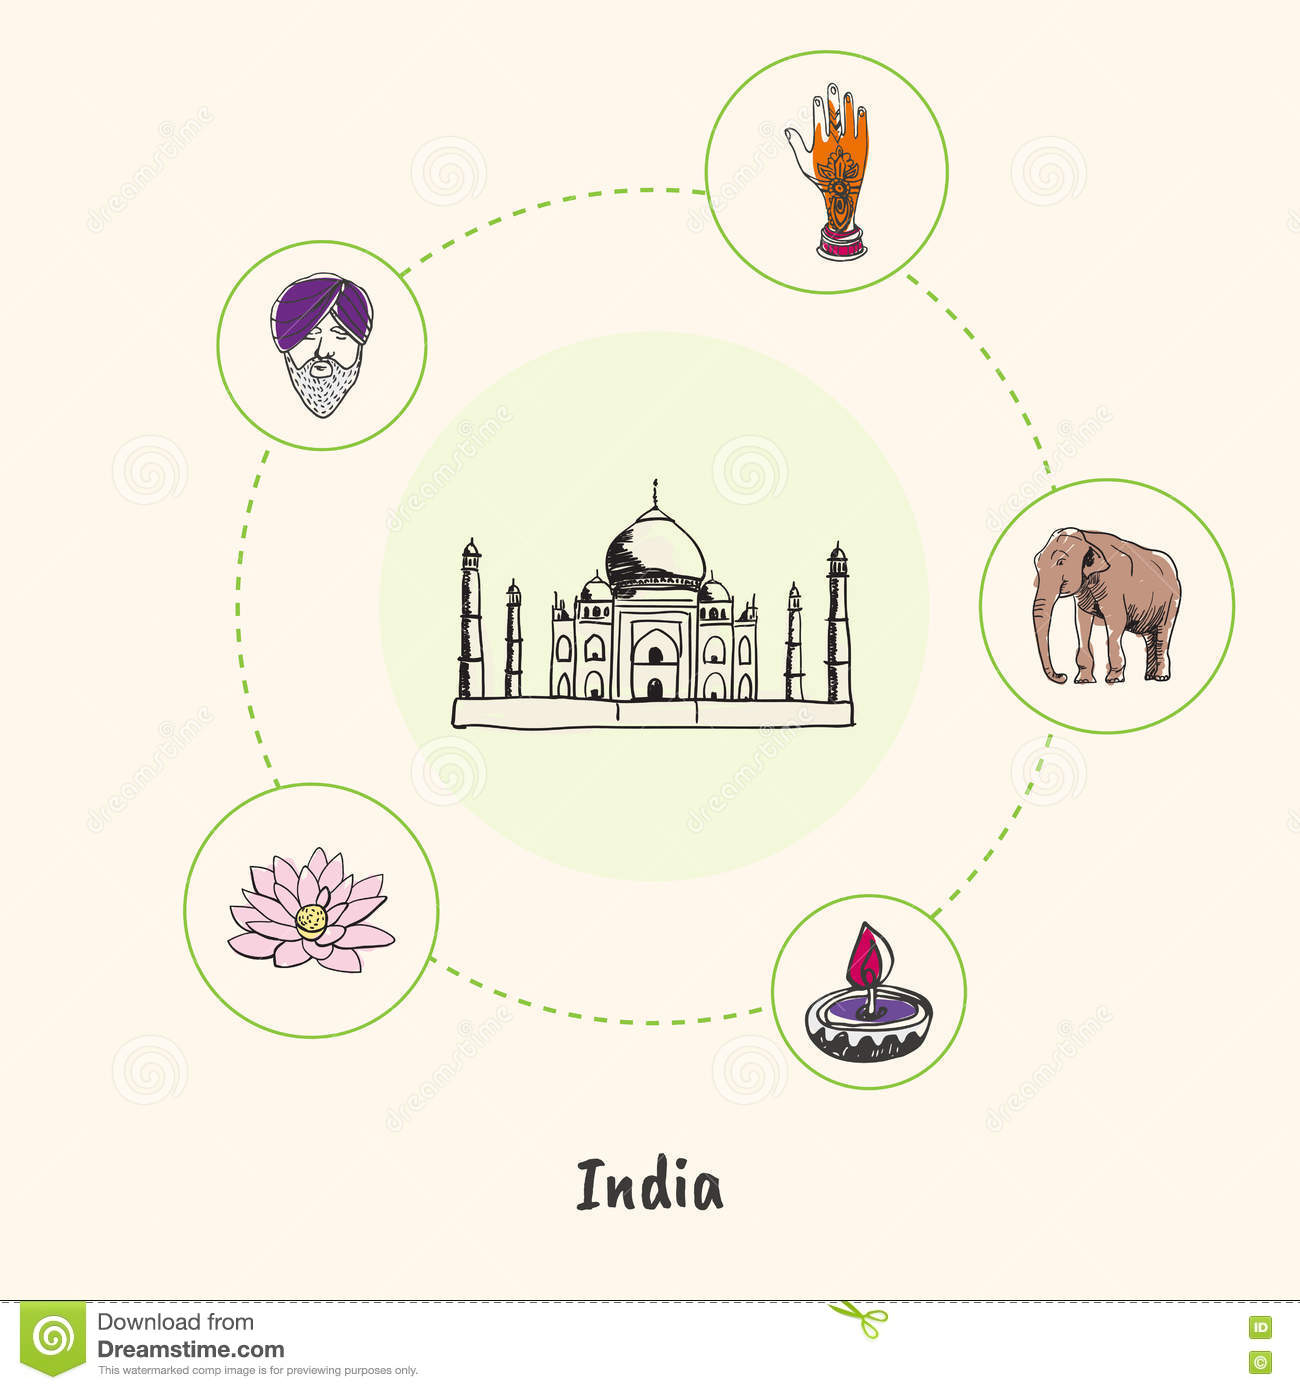 center line hindu single men Center line's best 100% free hindu dating site meet thousands of single hindus in center line with mingle2's free hindu personal ads and chat rooms our network of hindu men and women in center line is the perfect place to make hindu friends or find a hindu boyfriend or girlfriend in center line.